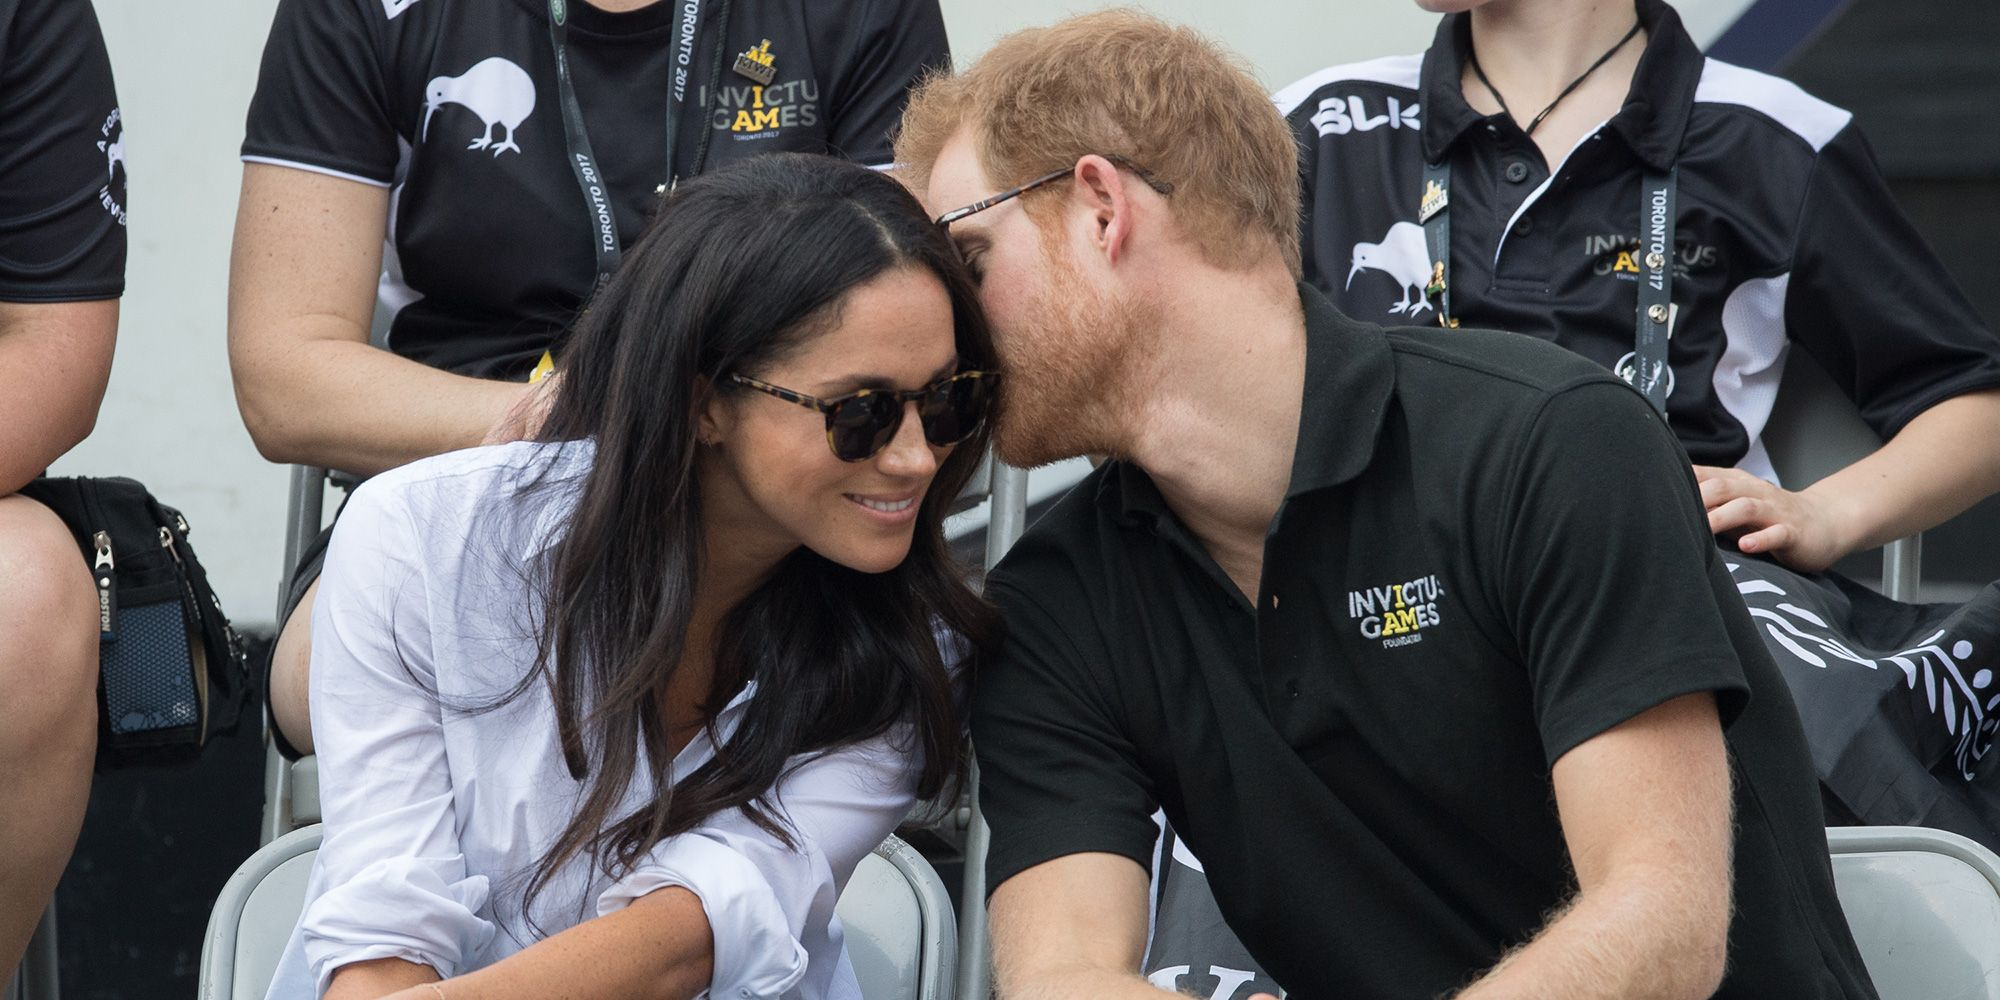 X of Prince Harry and Meghan Markle's cutest PDA moments